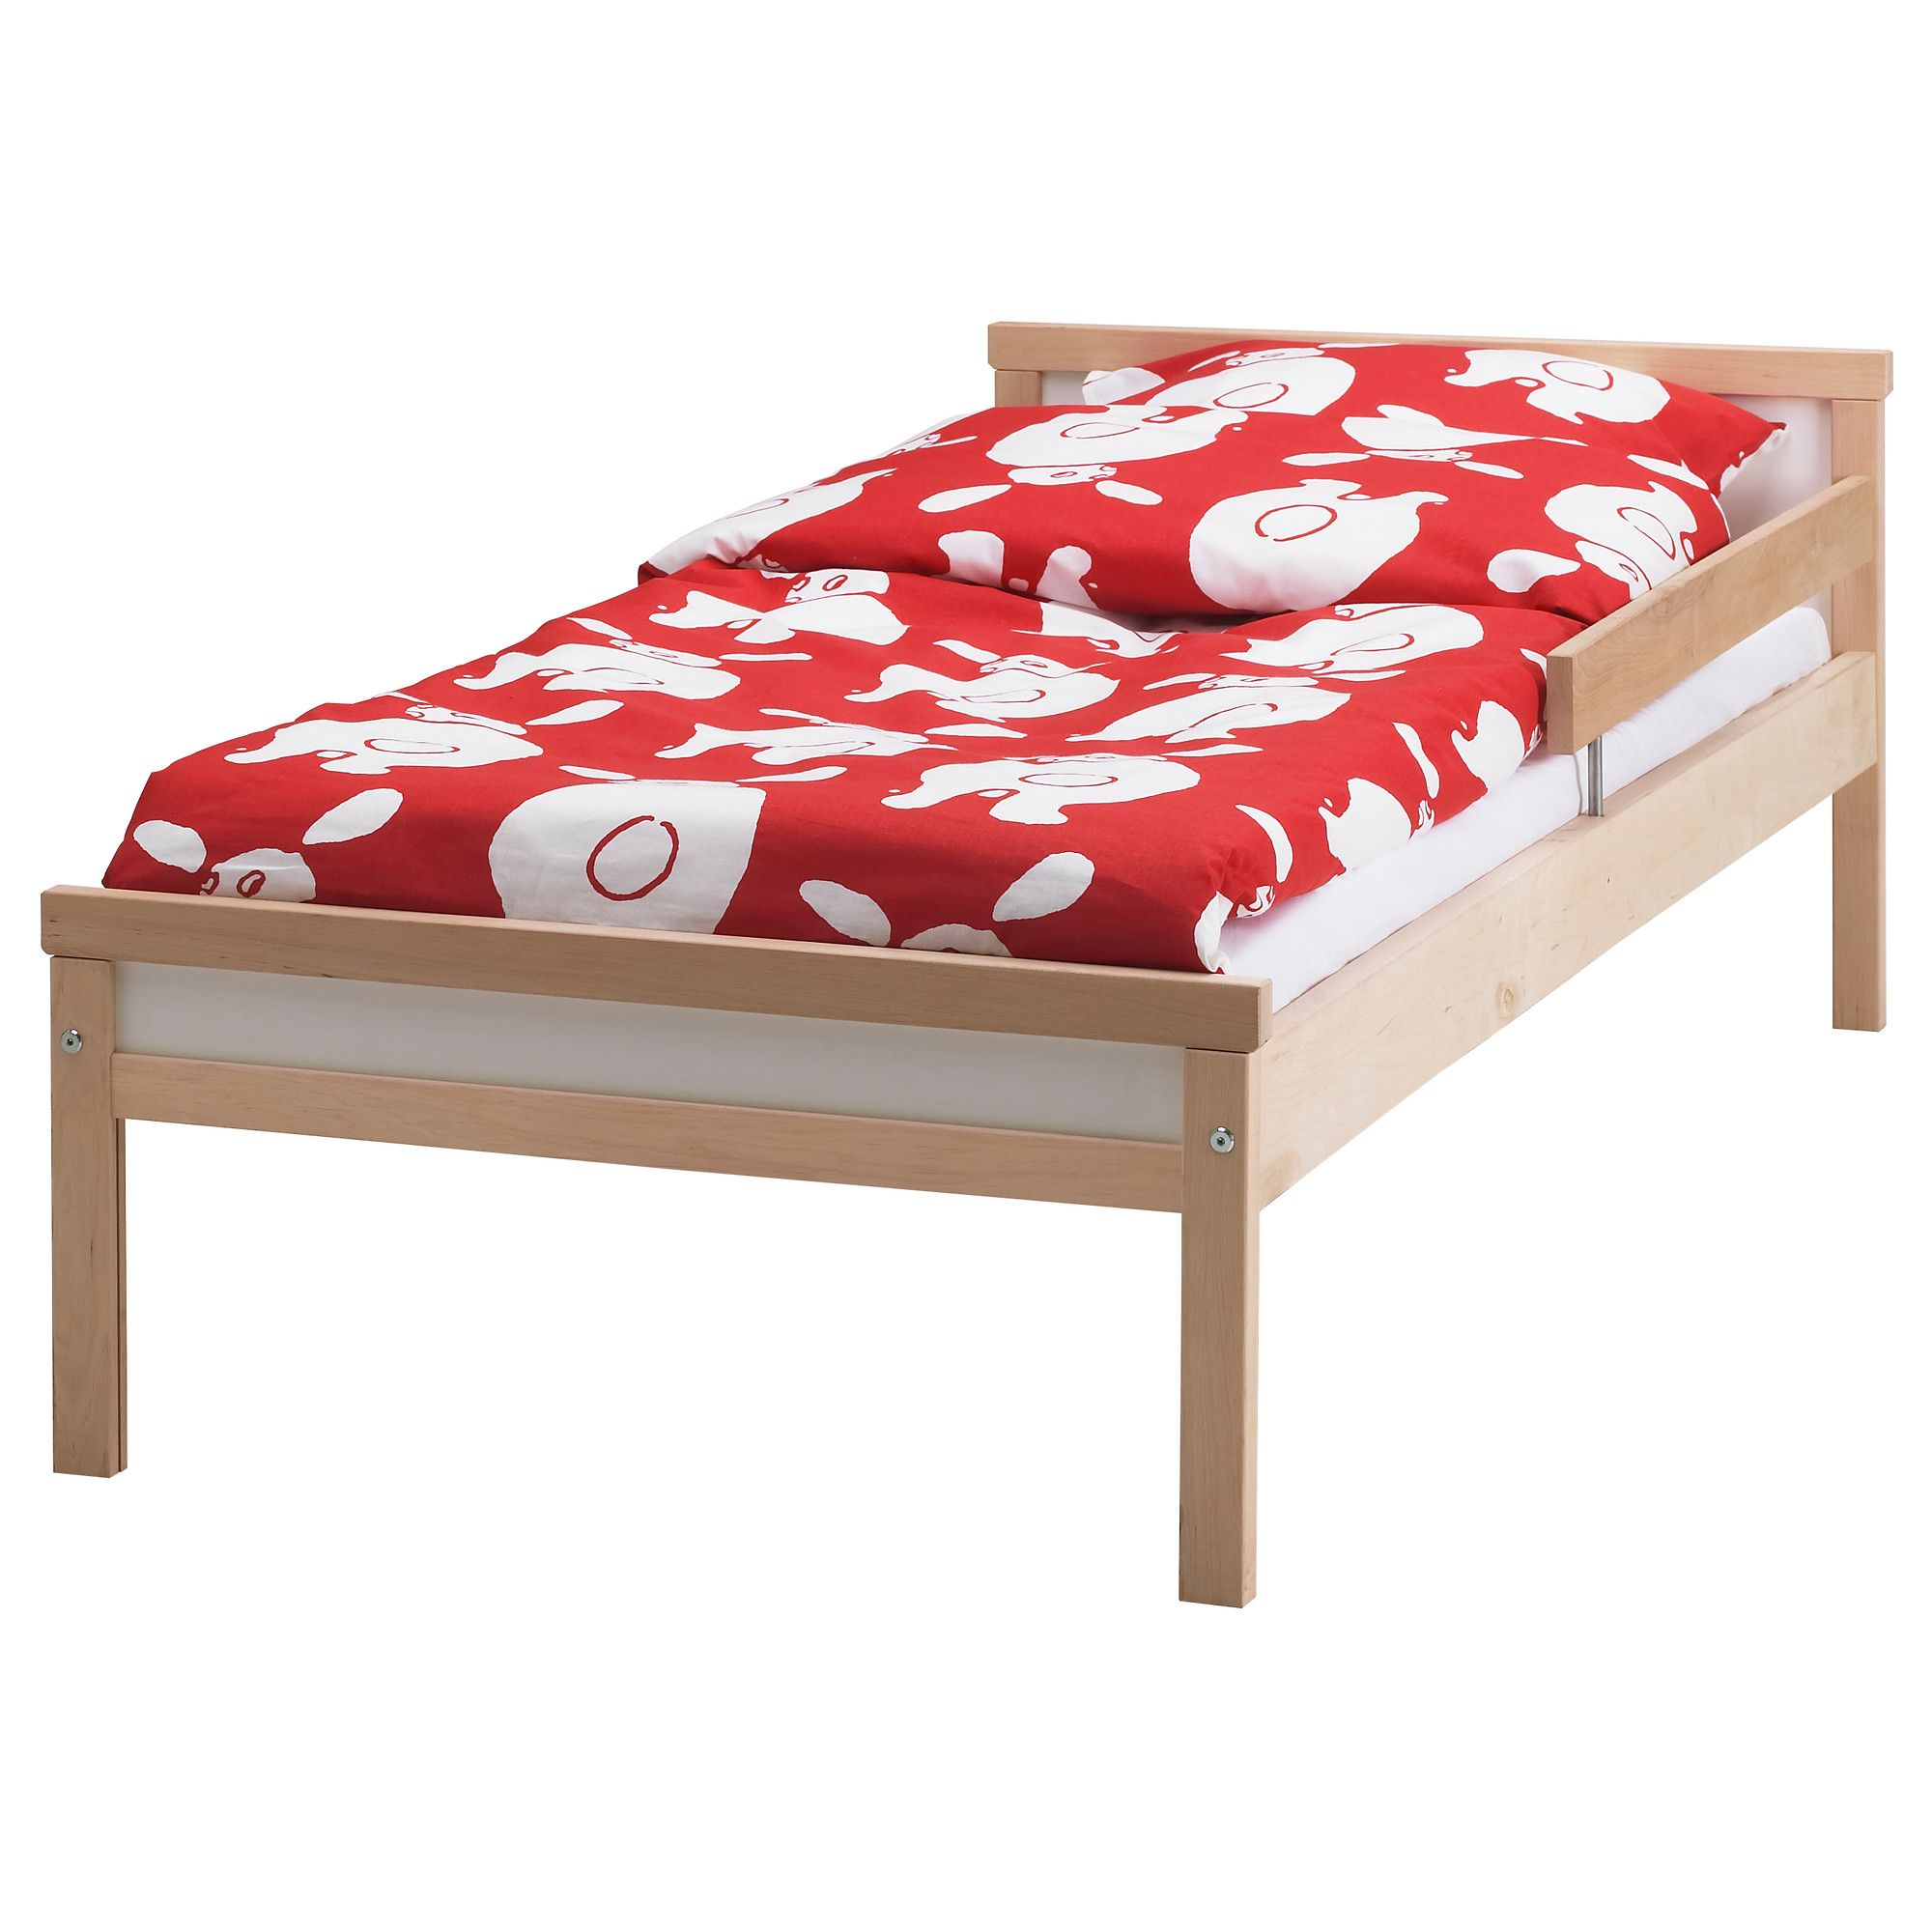 SNIGLAR Bed frame with slatted bed base IKEA ly $59 but would